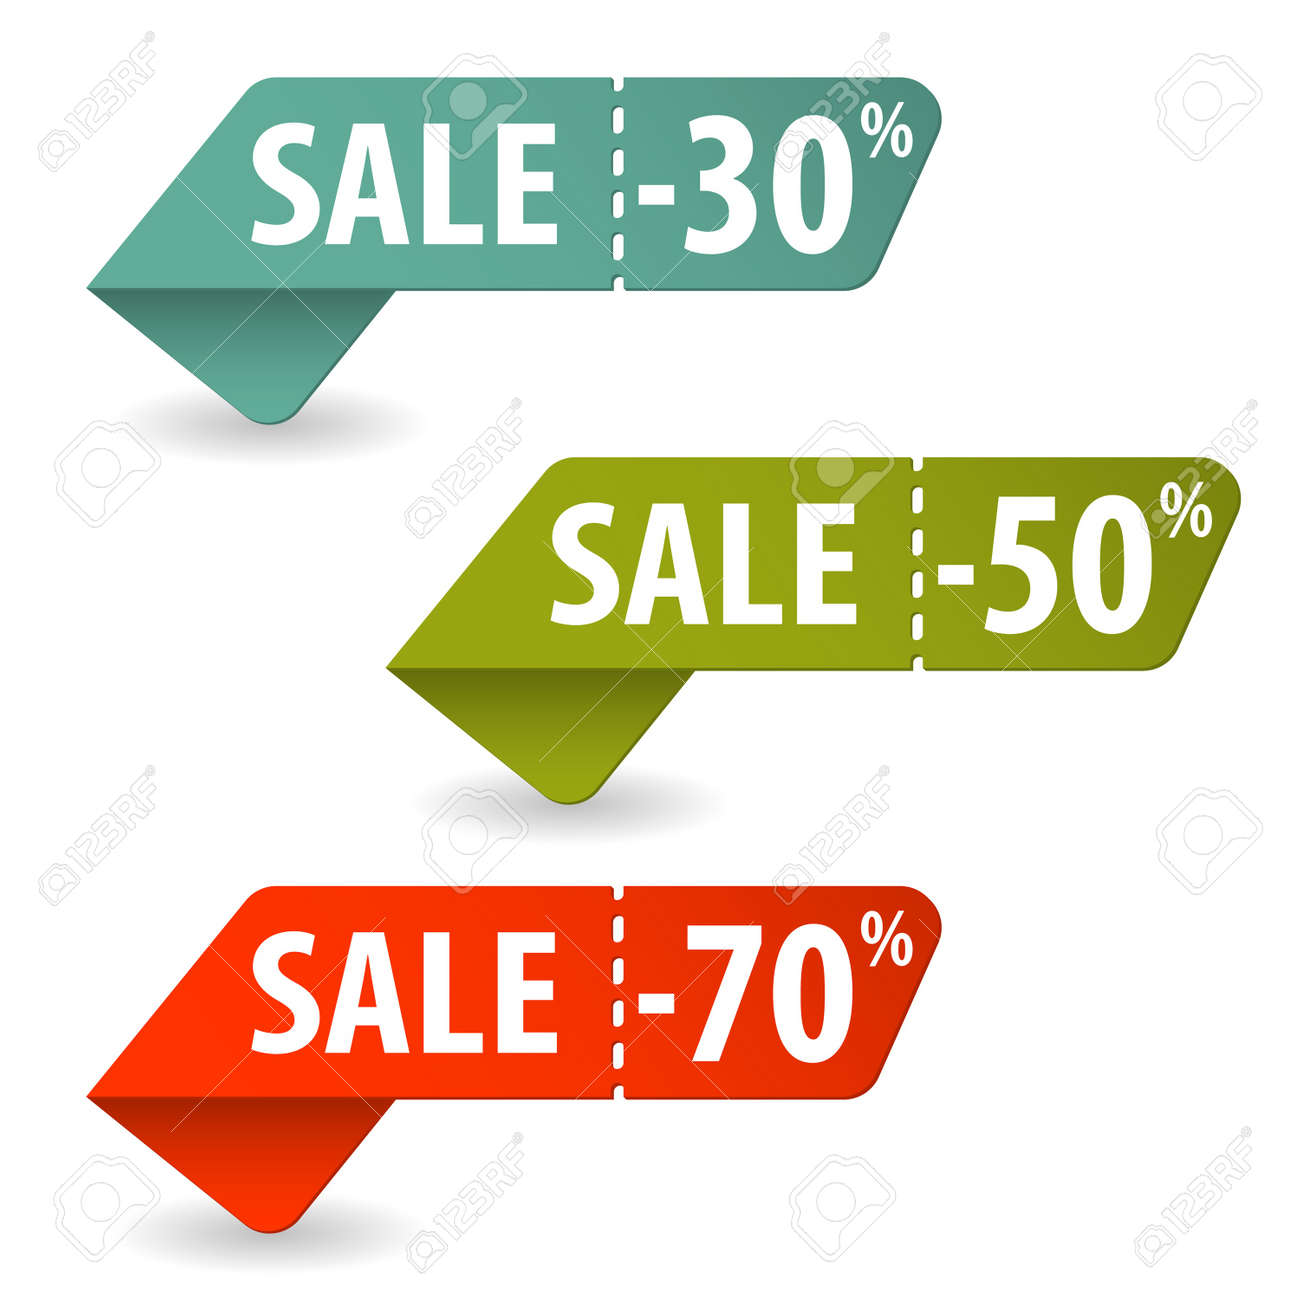 Collect Sale Signs with Tear-off Coupon Stock Vector - 15089754